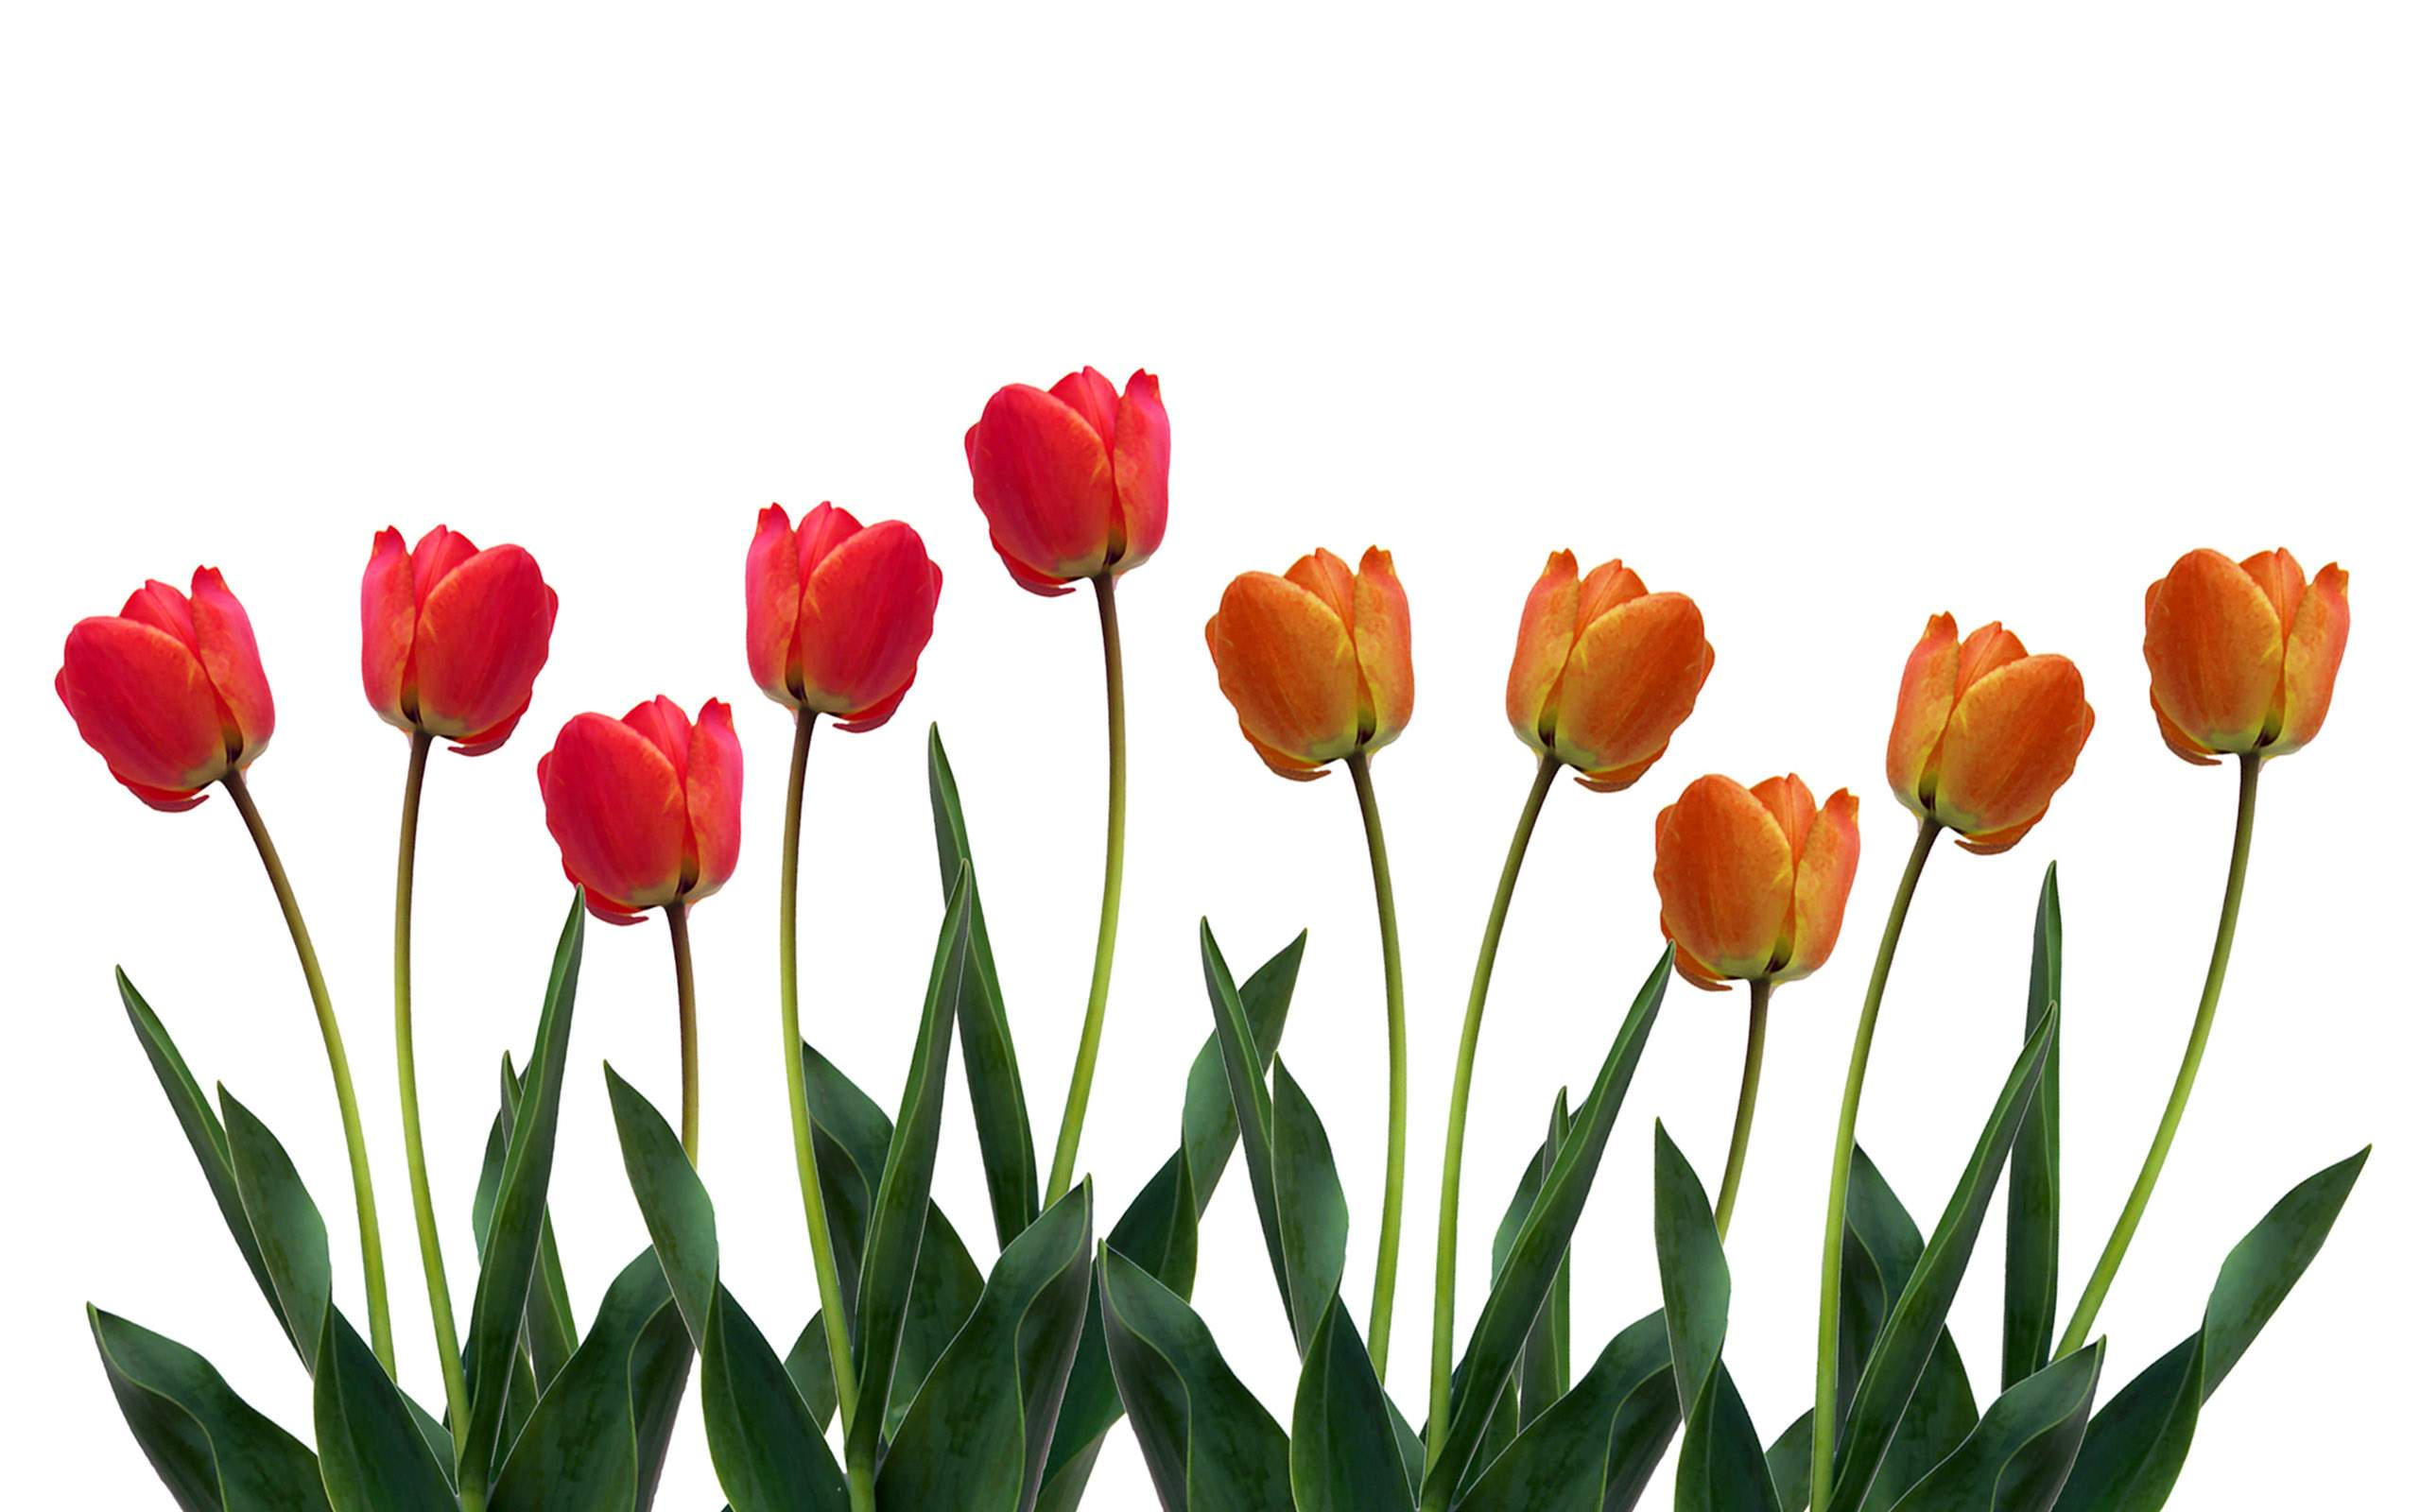 Flower row clipart banner transparent Row Of Flowers Clip Art - ClipArt Best banner transparent